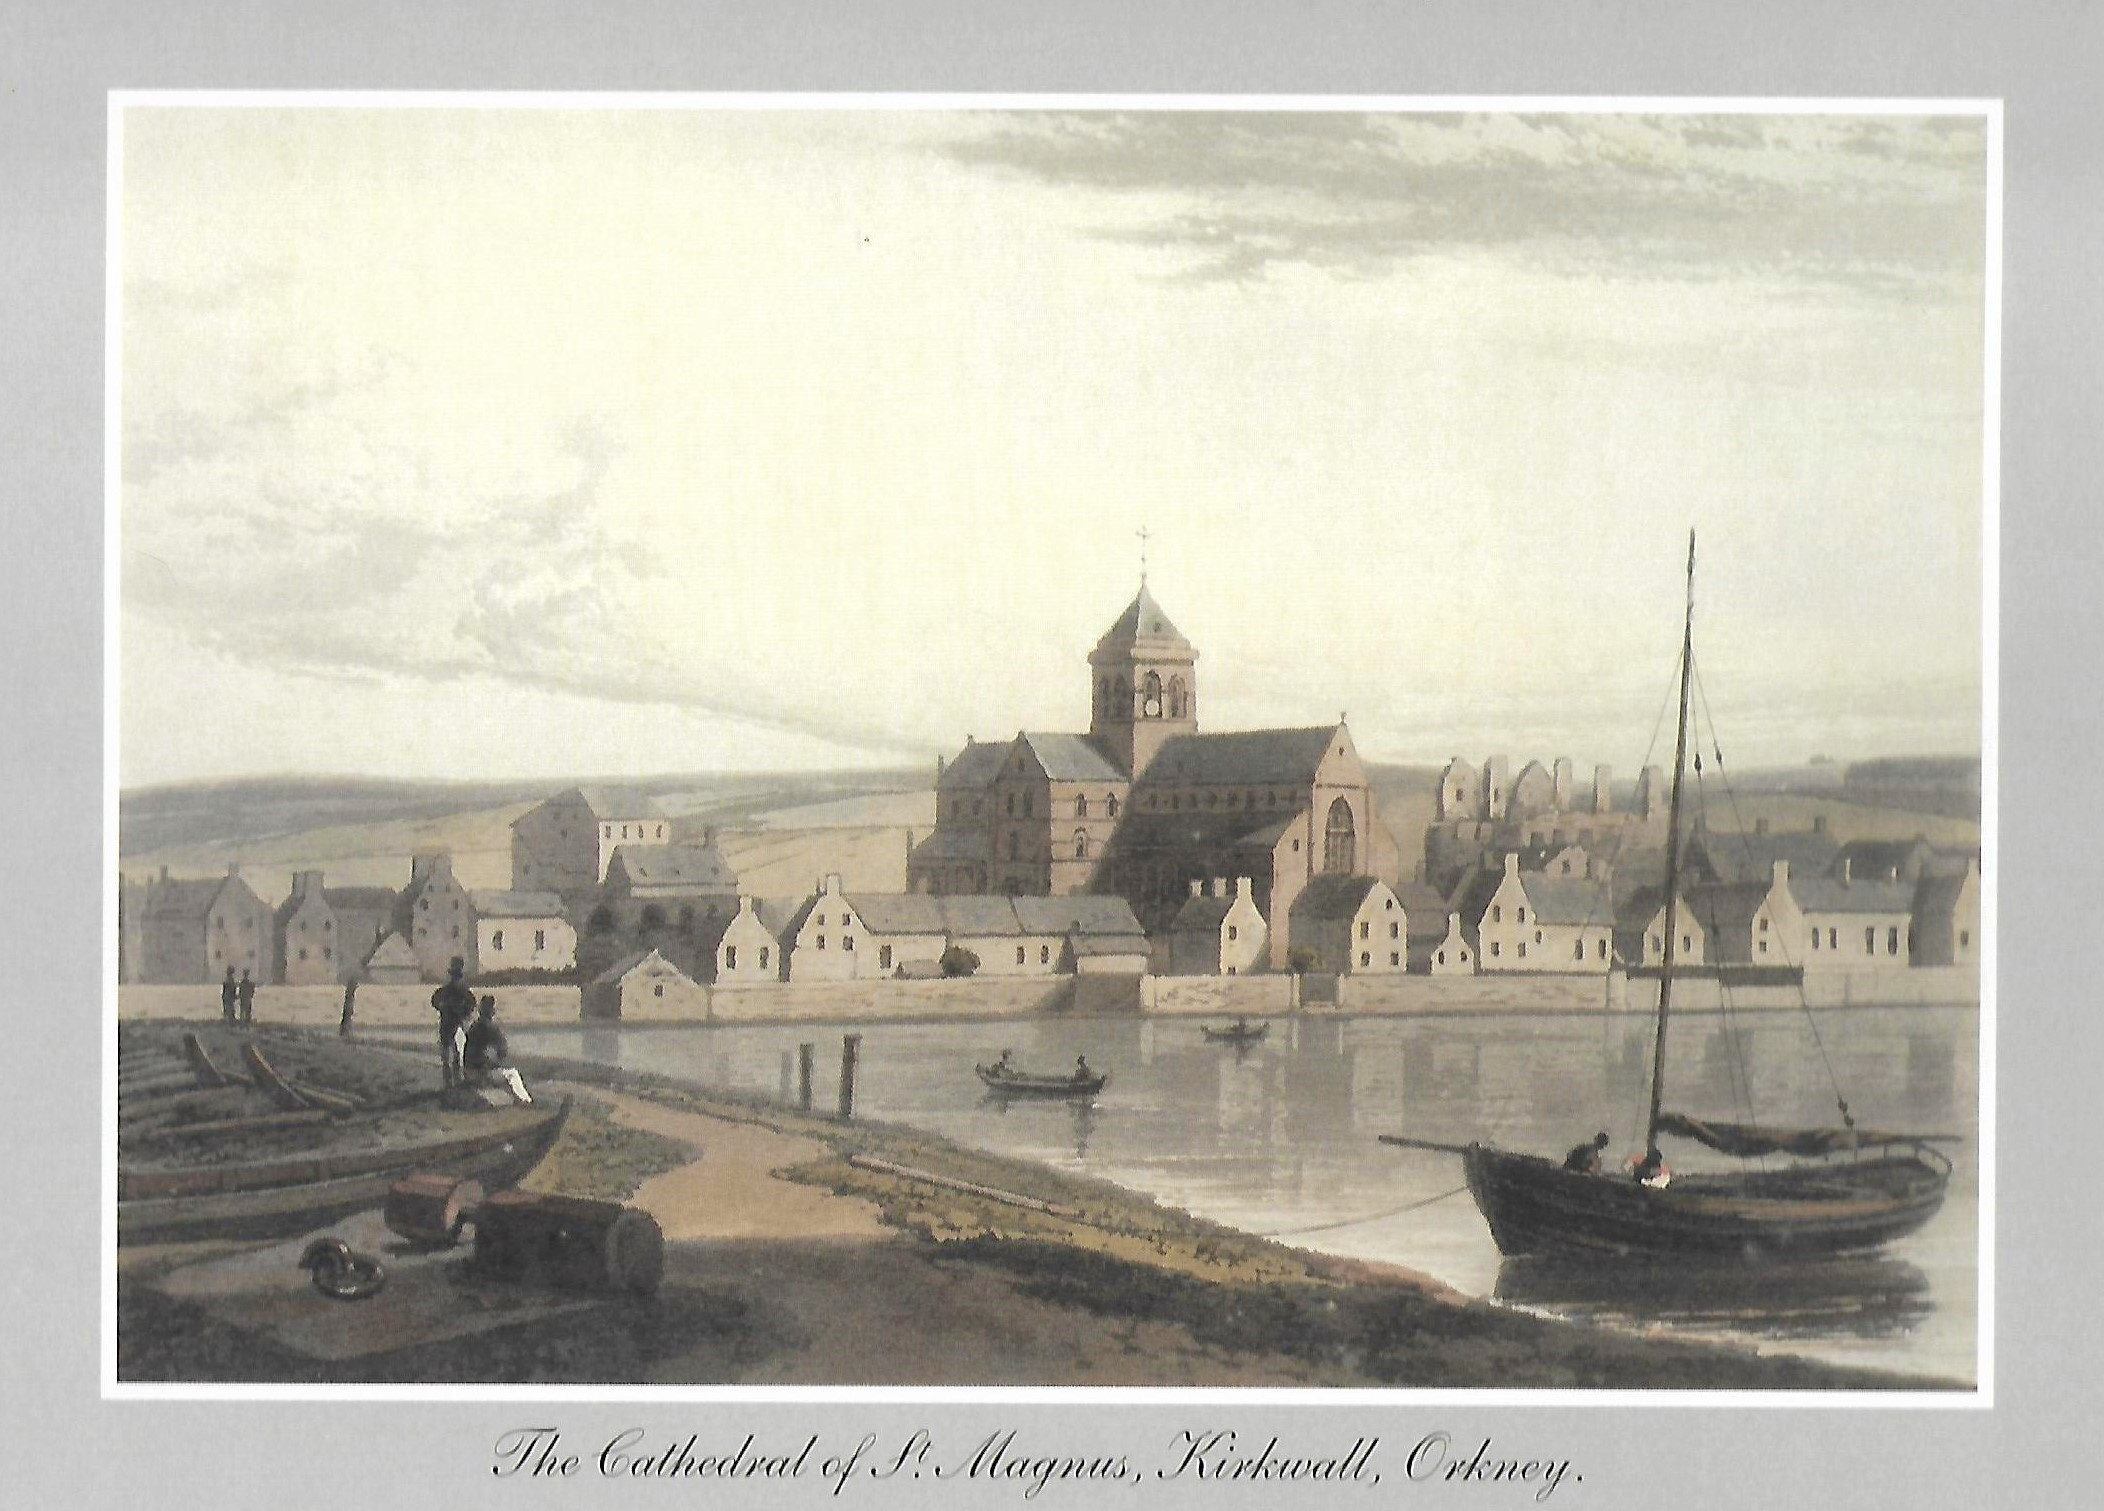 William Danielle's painting of the cathedral - Orkney Islands, Scotland, UK